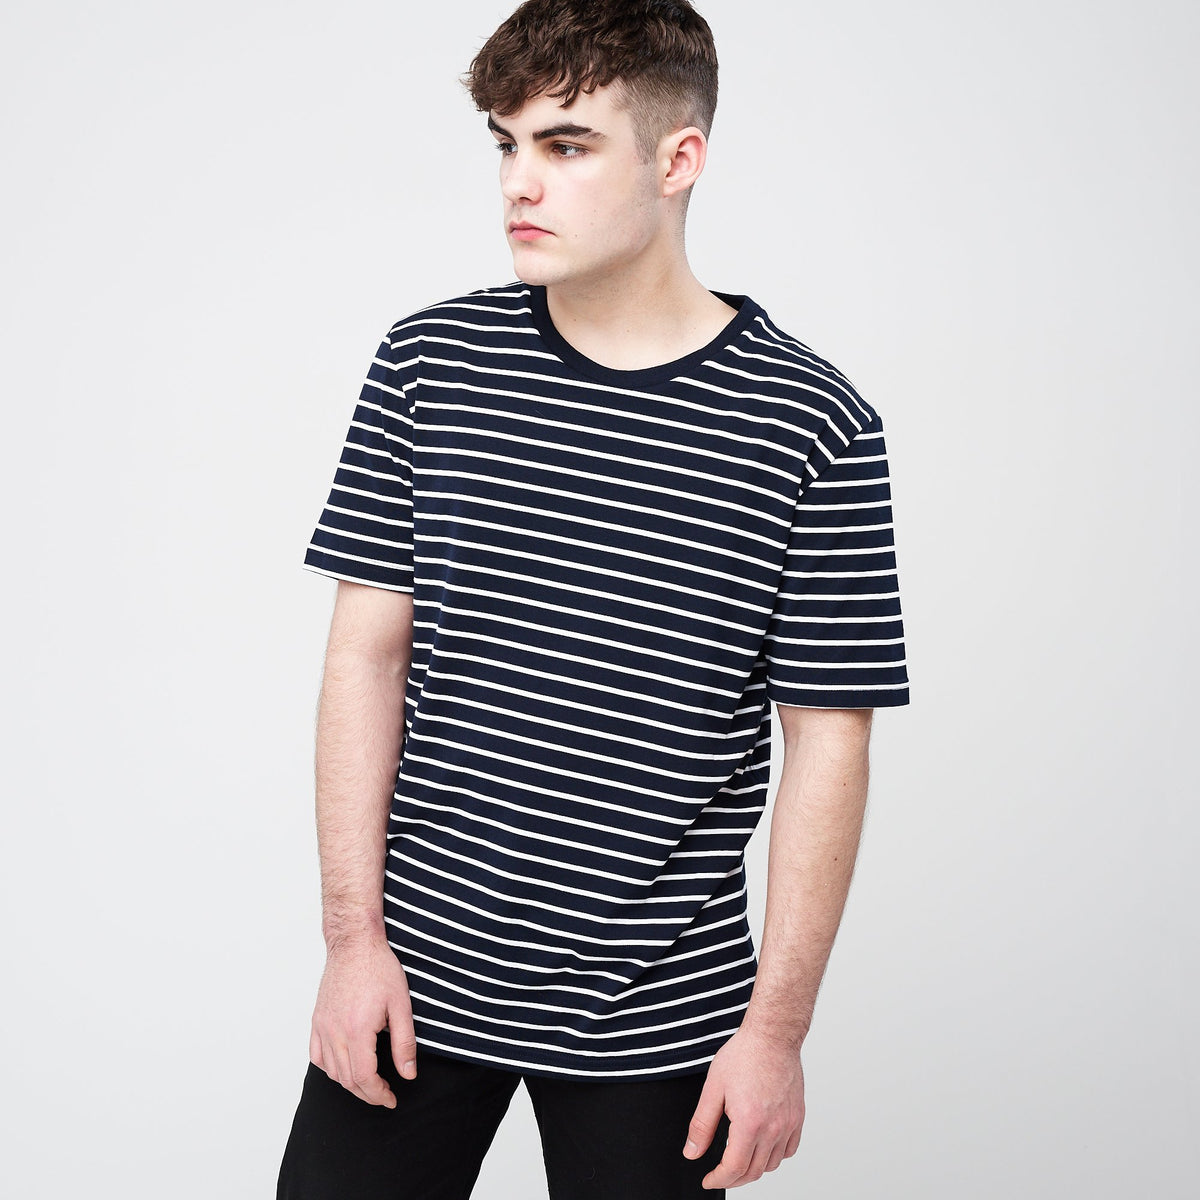 Men's Short Sleeve Stripe T-Shirt Navy/Thin White - Community Clothing